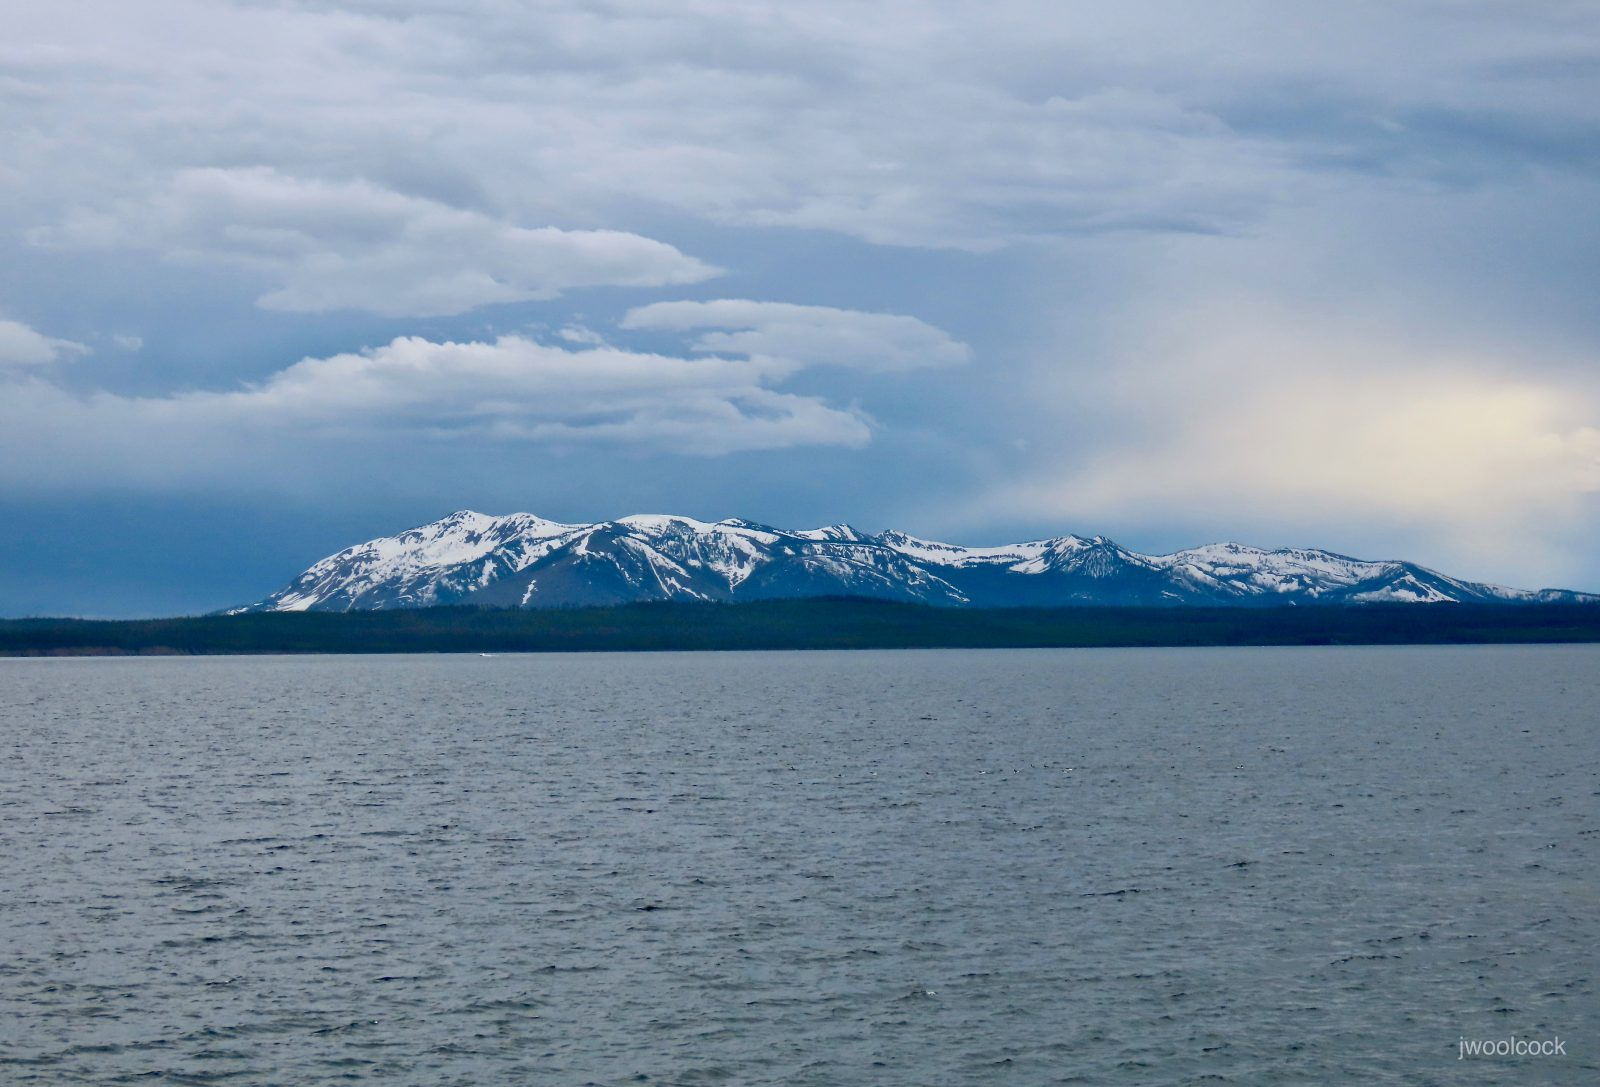 Gathering Storm – Yellowstone Lake